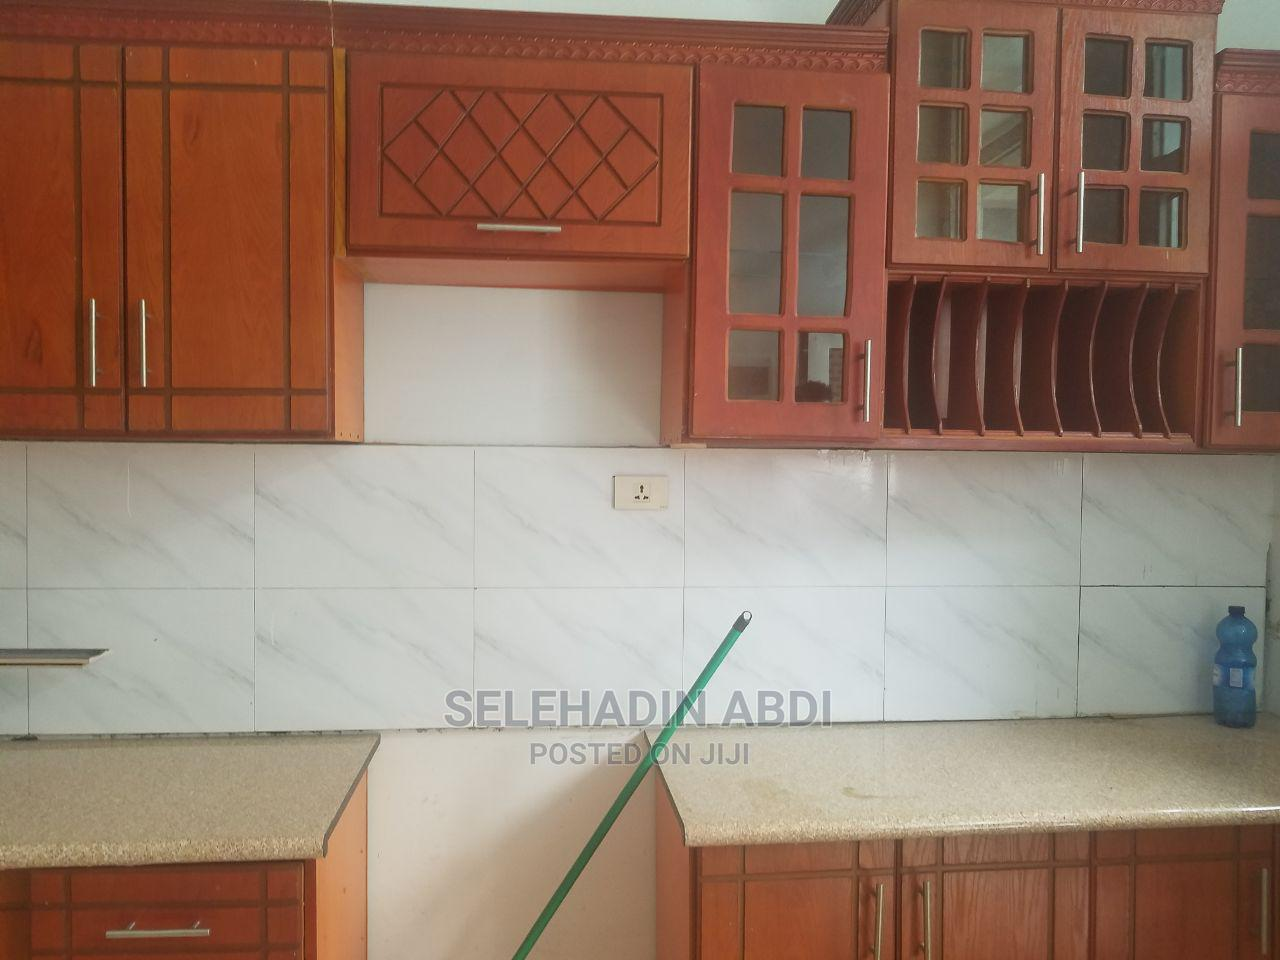 Furnished 6bdrm House in ዱከም ከተማ, East Shewa for Sale | Houses & Apartments For Sale for sale in East Shewa, Oromia Region, Ethiopia